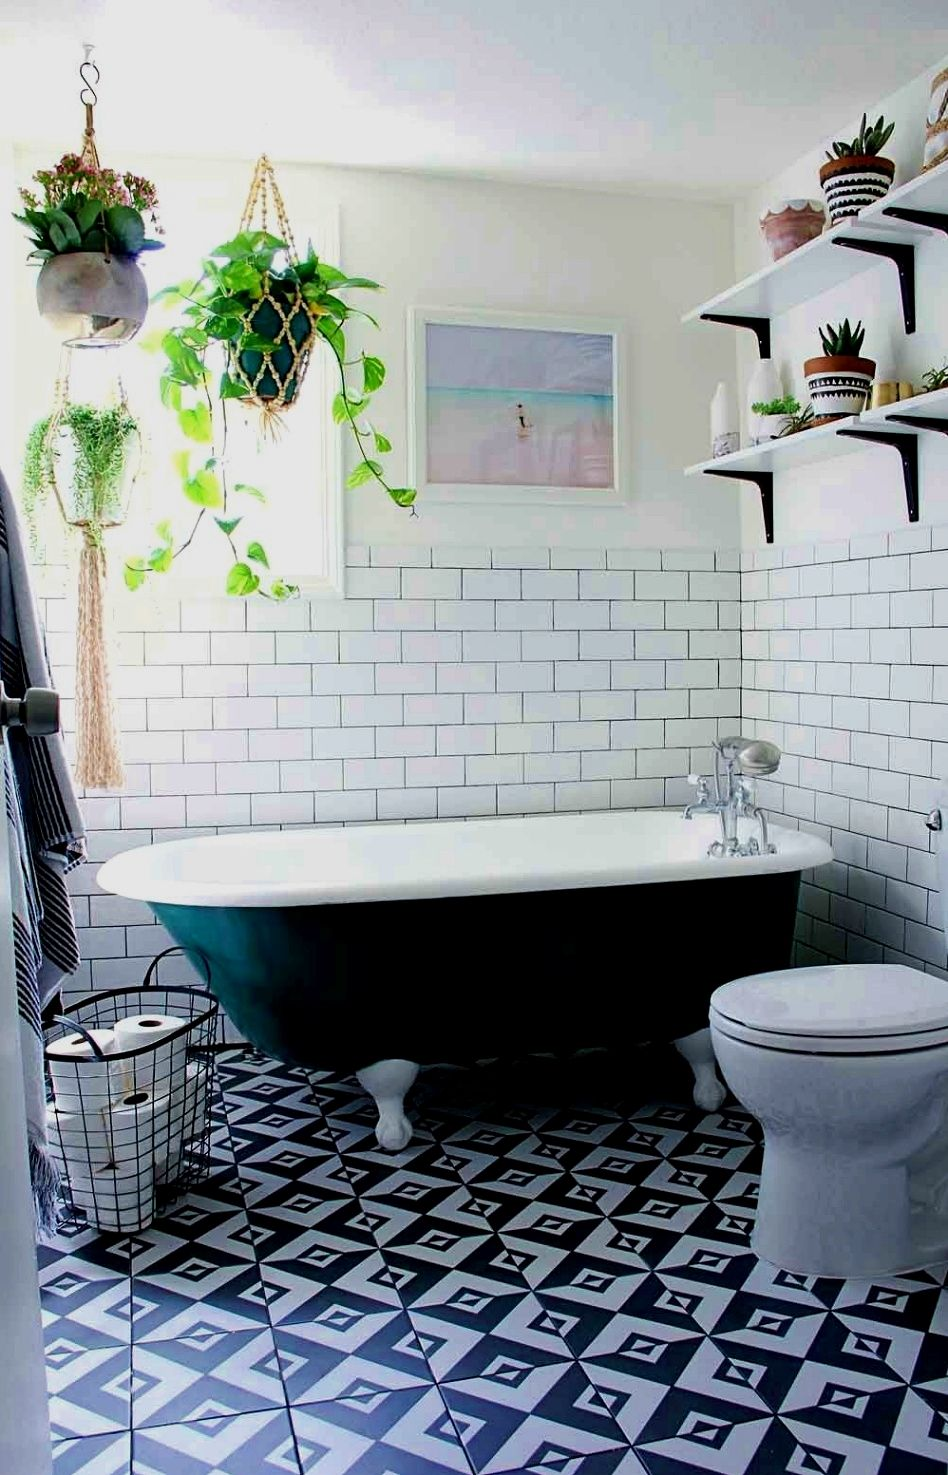 Bathroom Remodeling: Things to Consider Before You Remodel Your ...